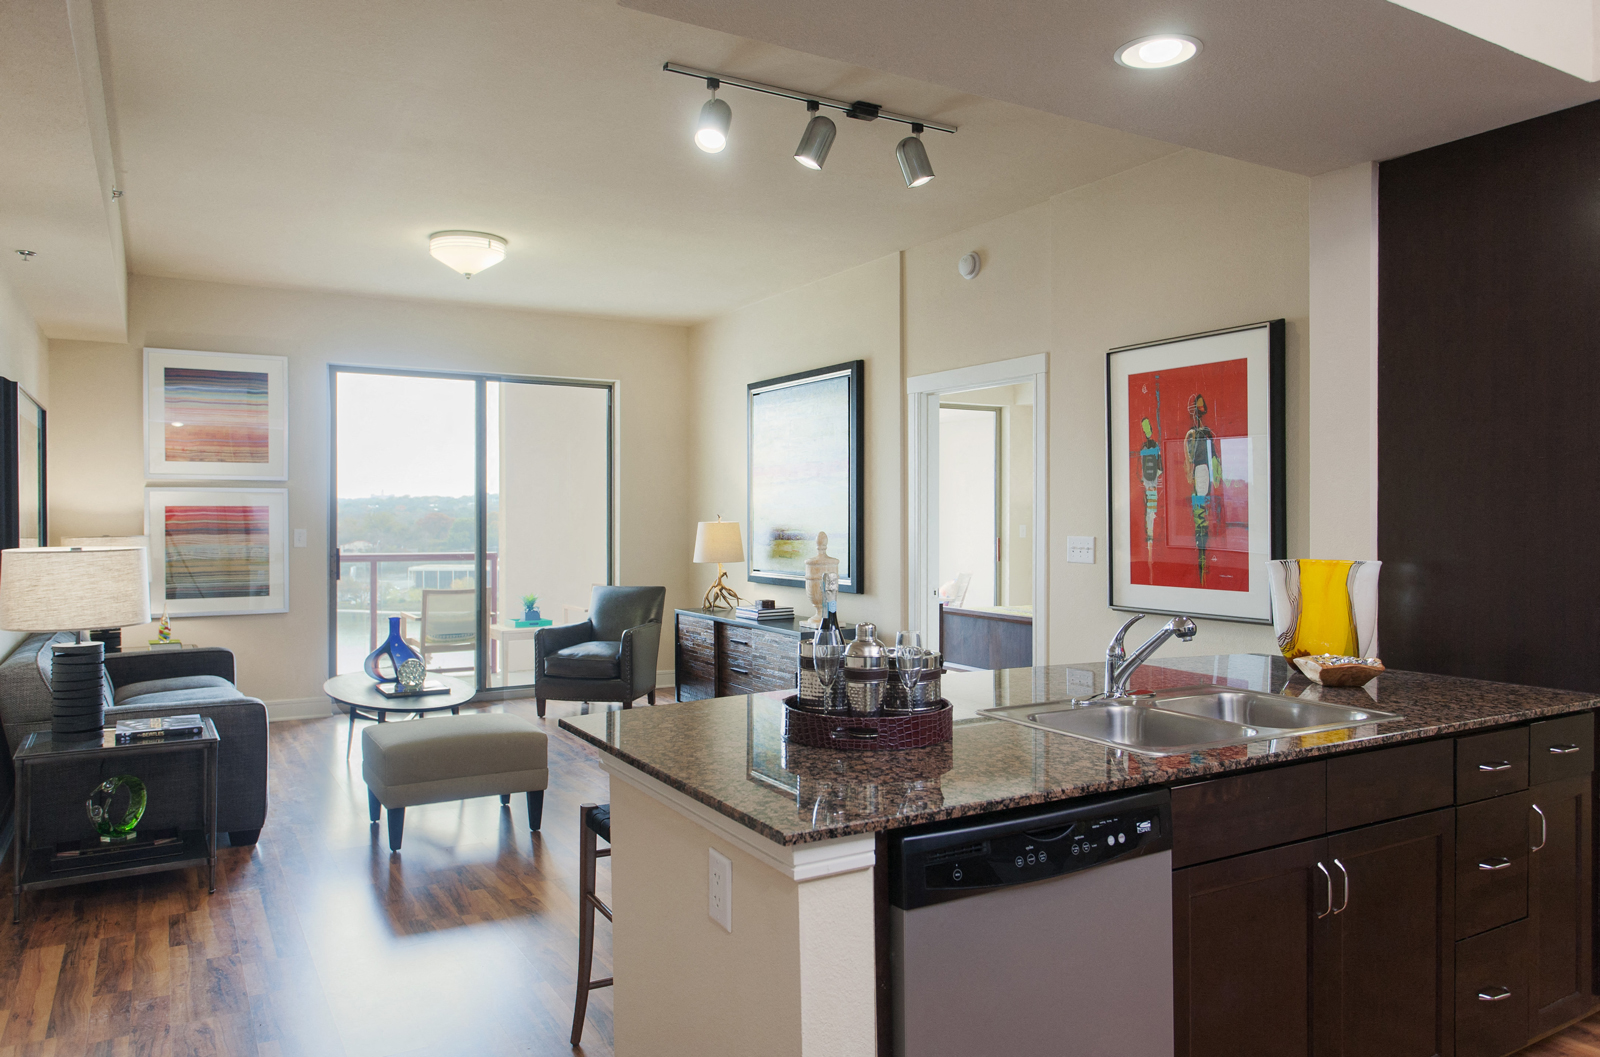 Beautiful Gourmet Kitchens With Dishwasher And Disposal At Windsor On The Lake, Austin,  TX 78701